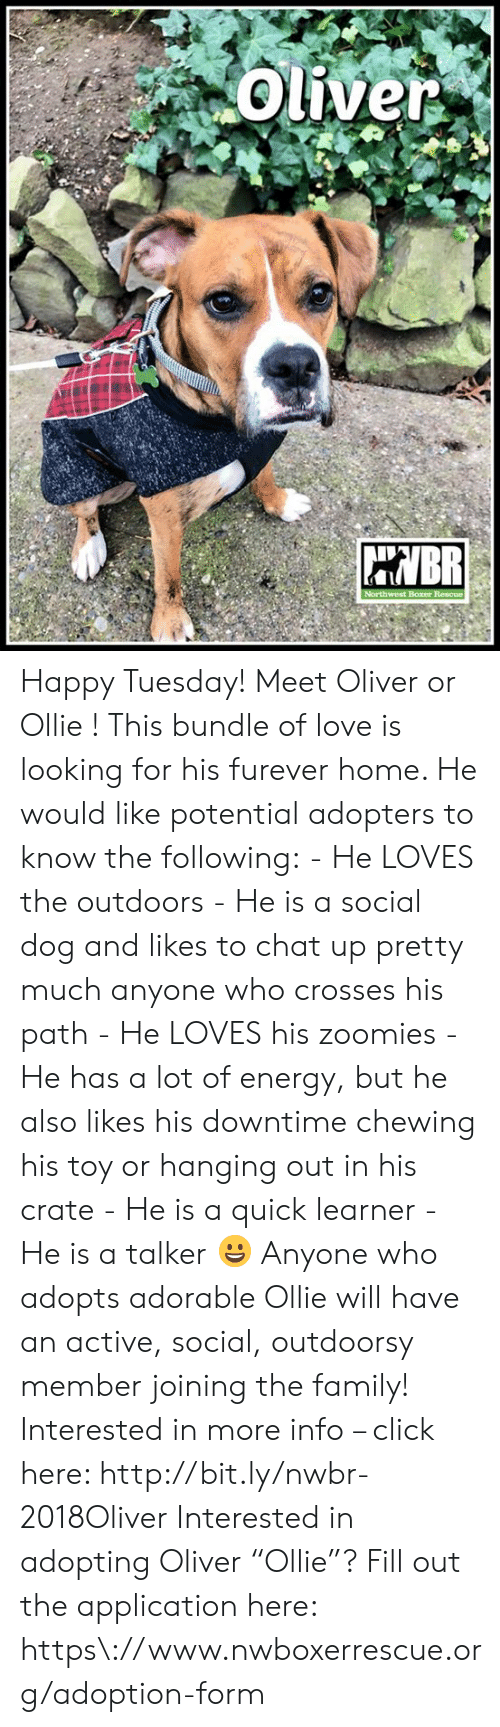 """Click, Energy, and Family: Oliver  BR  Northwest Boxer Rescue Happy Tuesday! Meet Oliver or Ollie !  This bundle of love is looking for his furever home.  He would like potential adopters to know the following:  - He LOVES the outdoors - He is a social dog and likes to chat up pretty much anyone who crosses his path - He LOVES his zoomies - He has a lot of energy, but he also likes his downtime chewing his toy or hanging out in his crate - He is a quick learner - He is a talker 😀  Anyone who adopts adorable Ollie will have an active, social, outdoorsy member joining the family!  Interested in more info – click here: http://bit.ly/nwbr-2018Oliver  Interested in adopting Oliver """"Ollie""""? Fill out the application here: https\://www.nwboxerrescue.org/adoption-form"""